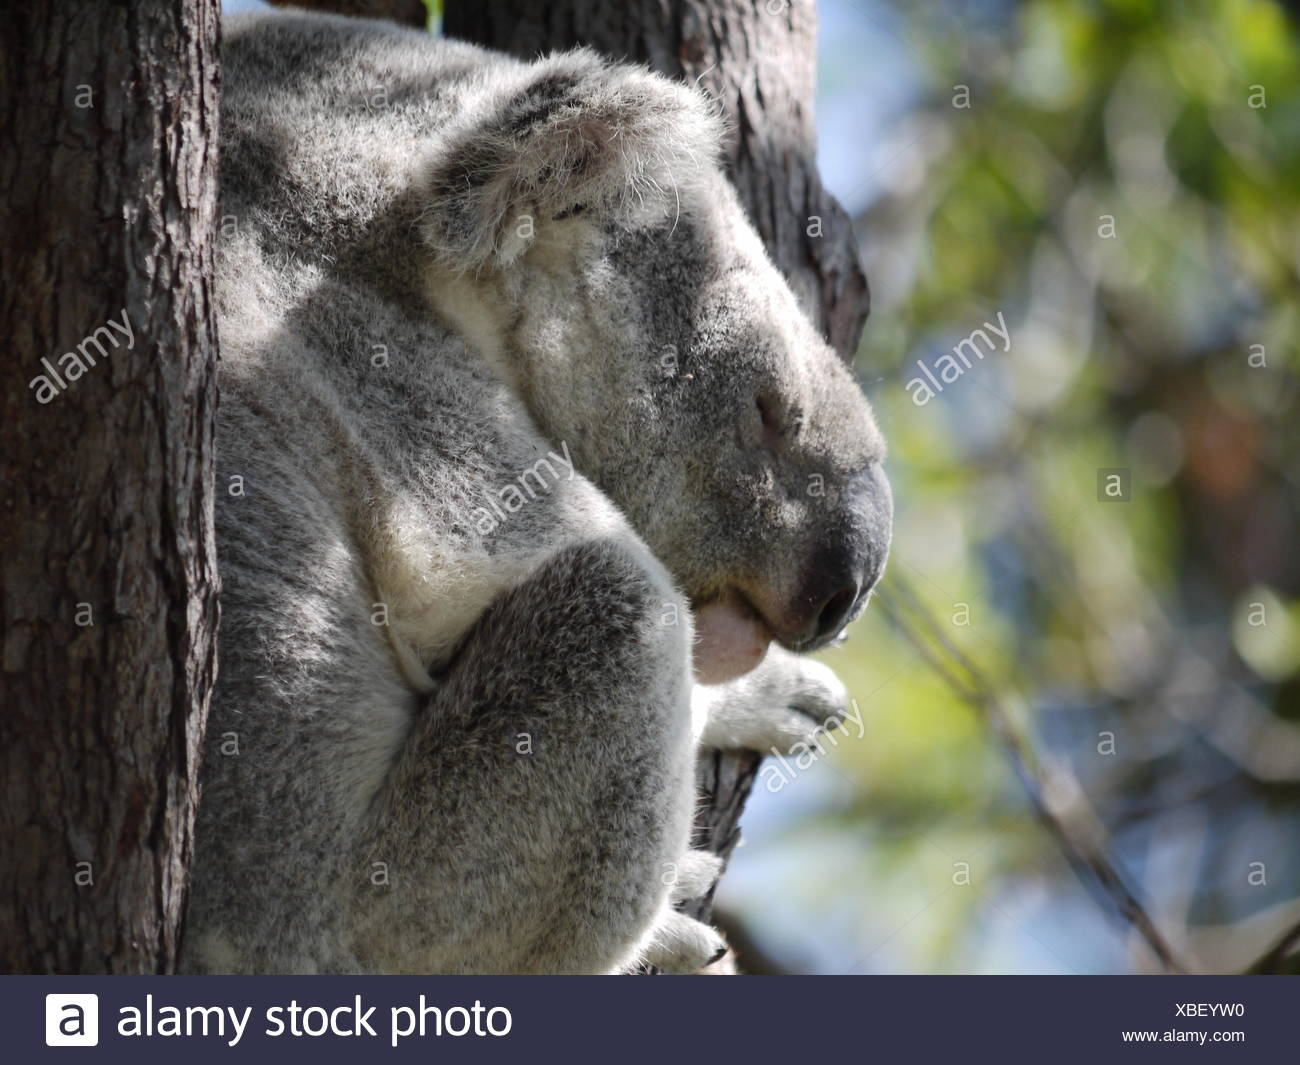 animals, radio silence, quietness, silence, australia, sleep